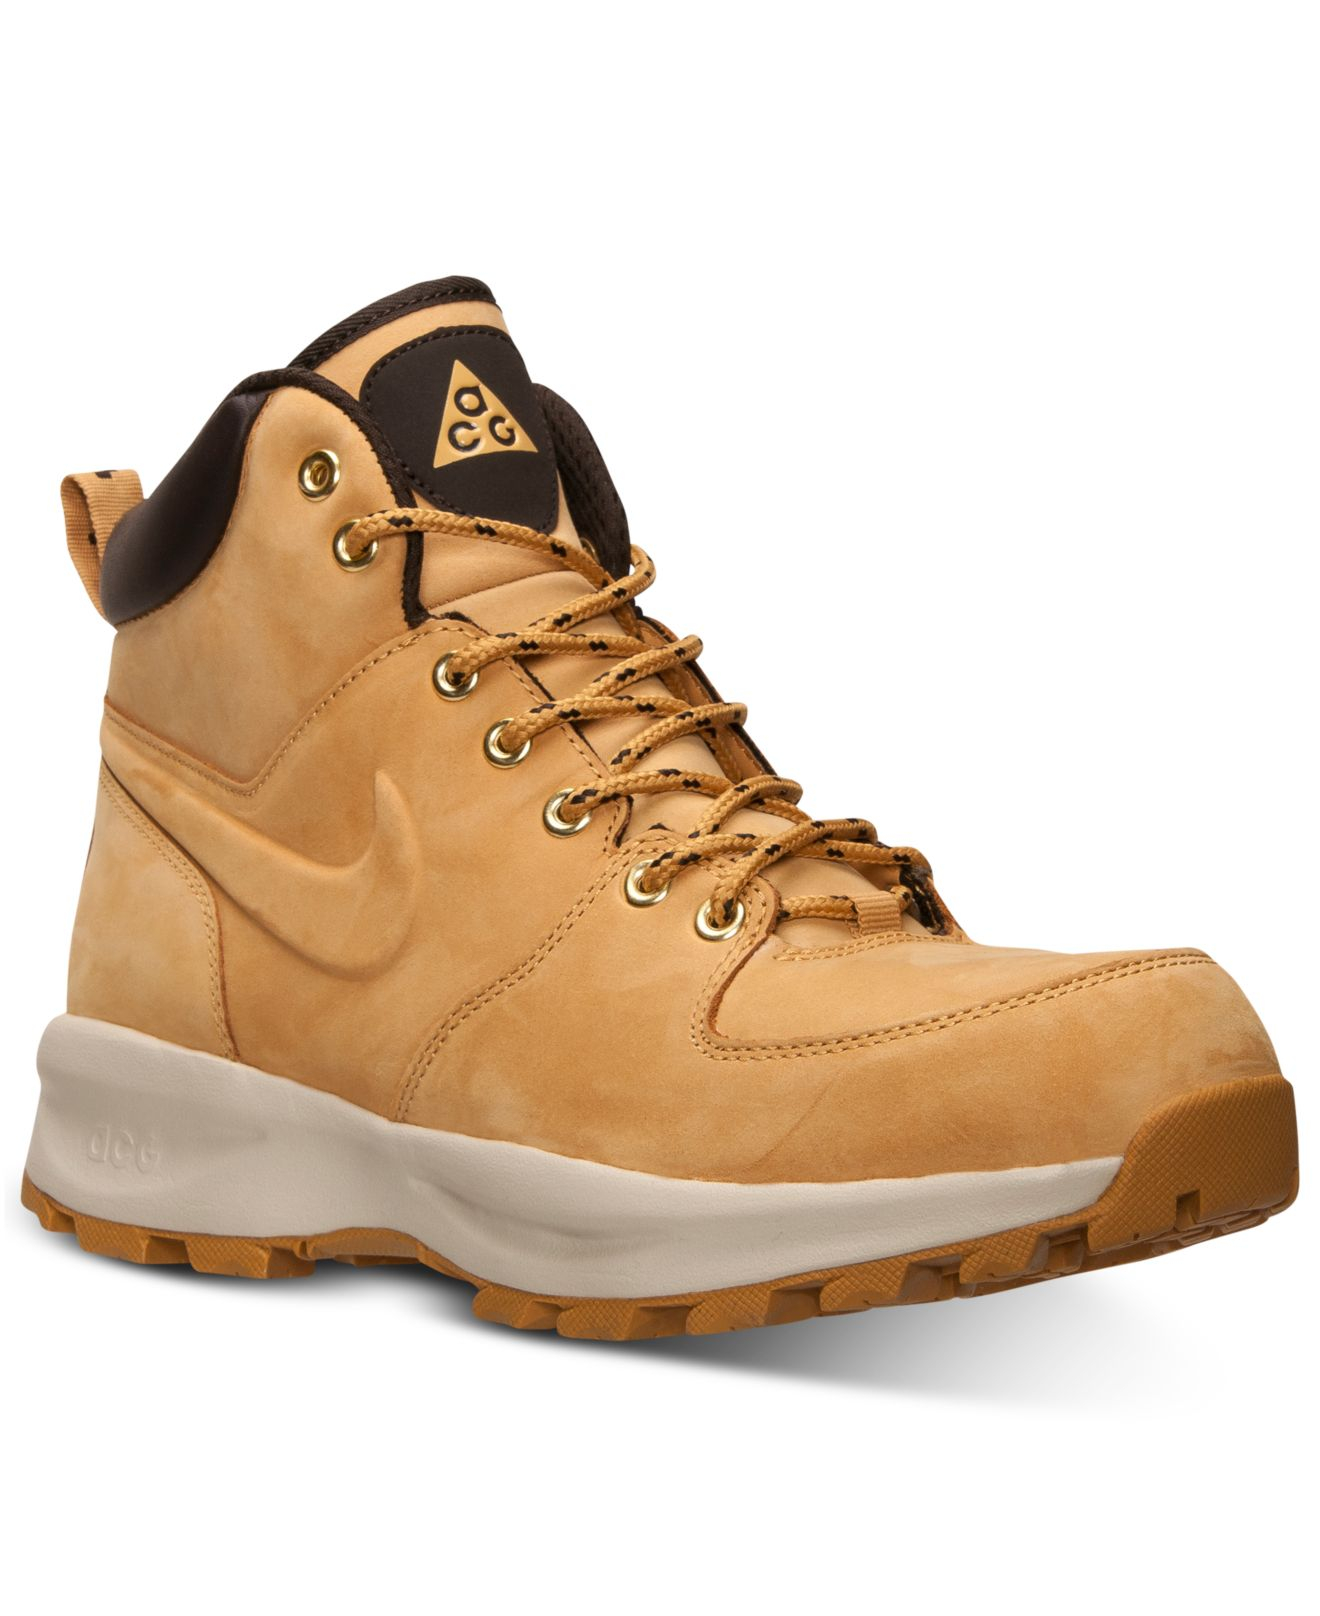 Nike Men39s Manoa Leather Boots From Finish Line In Natural